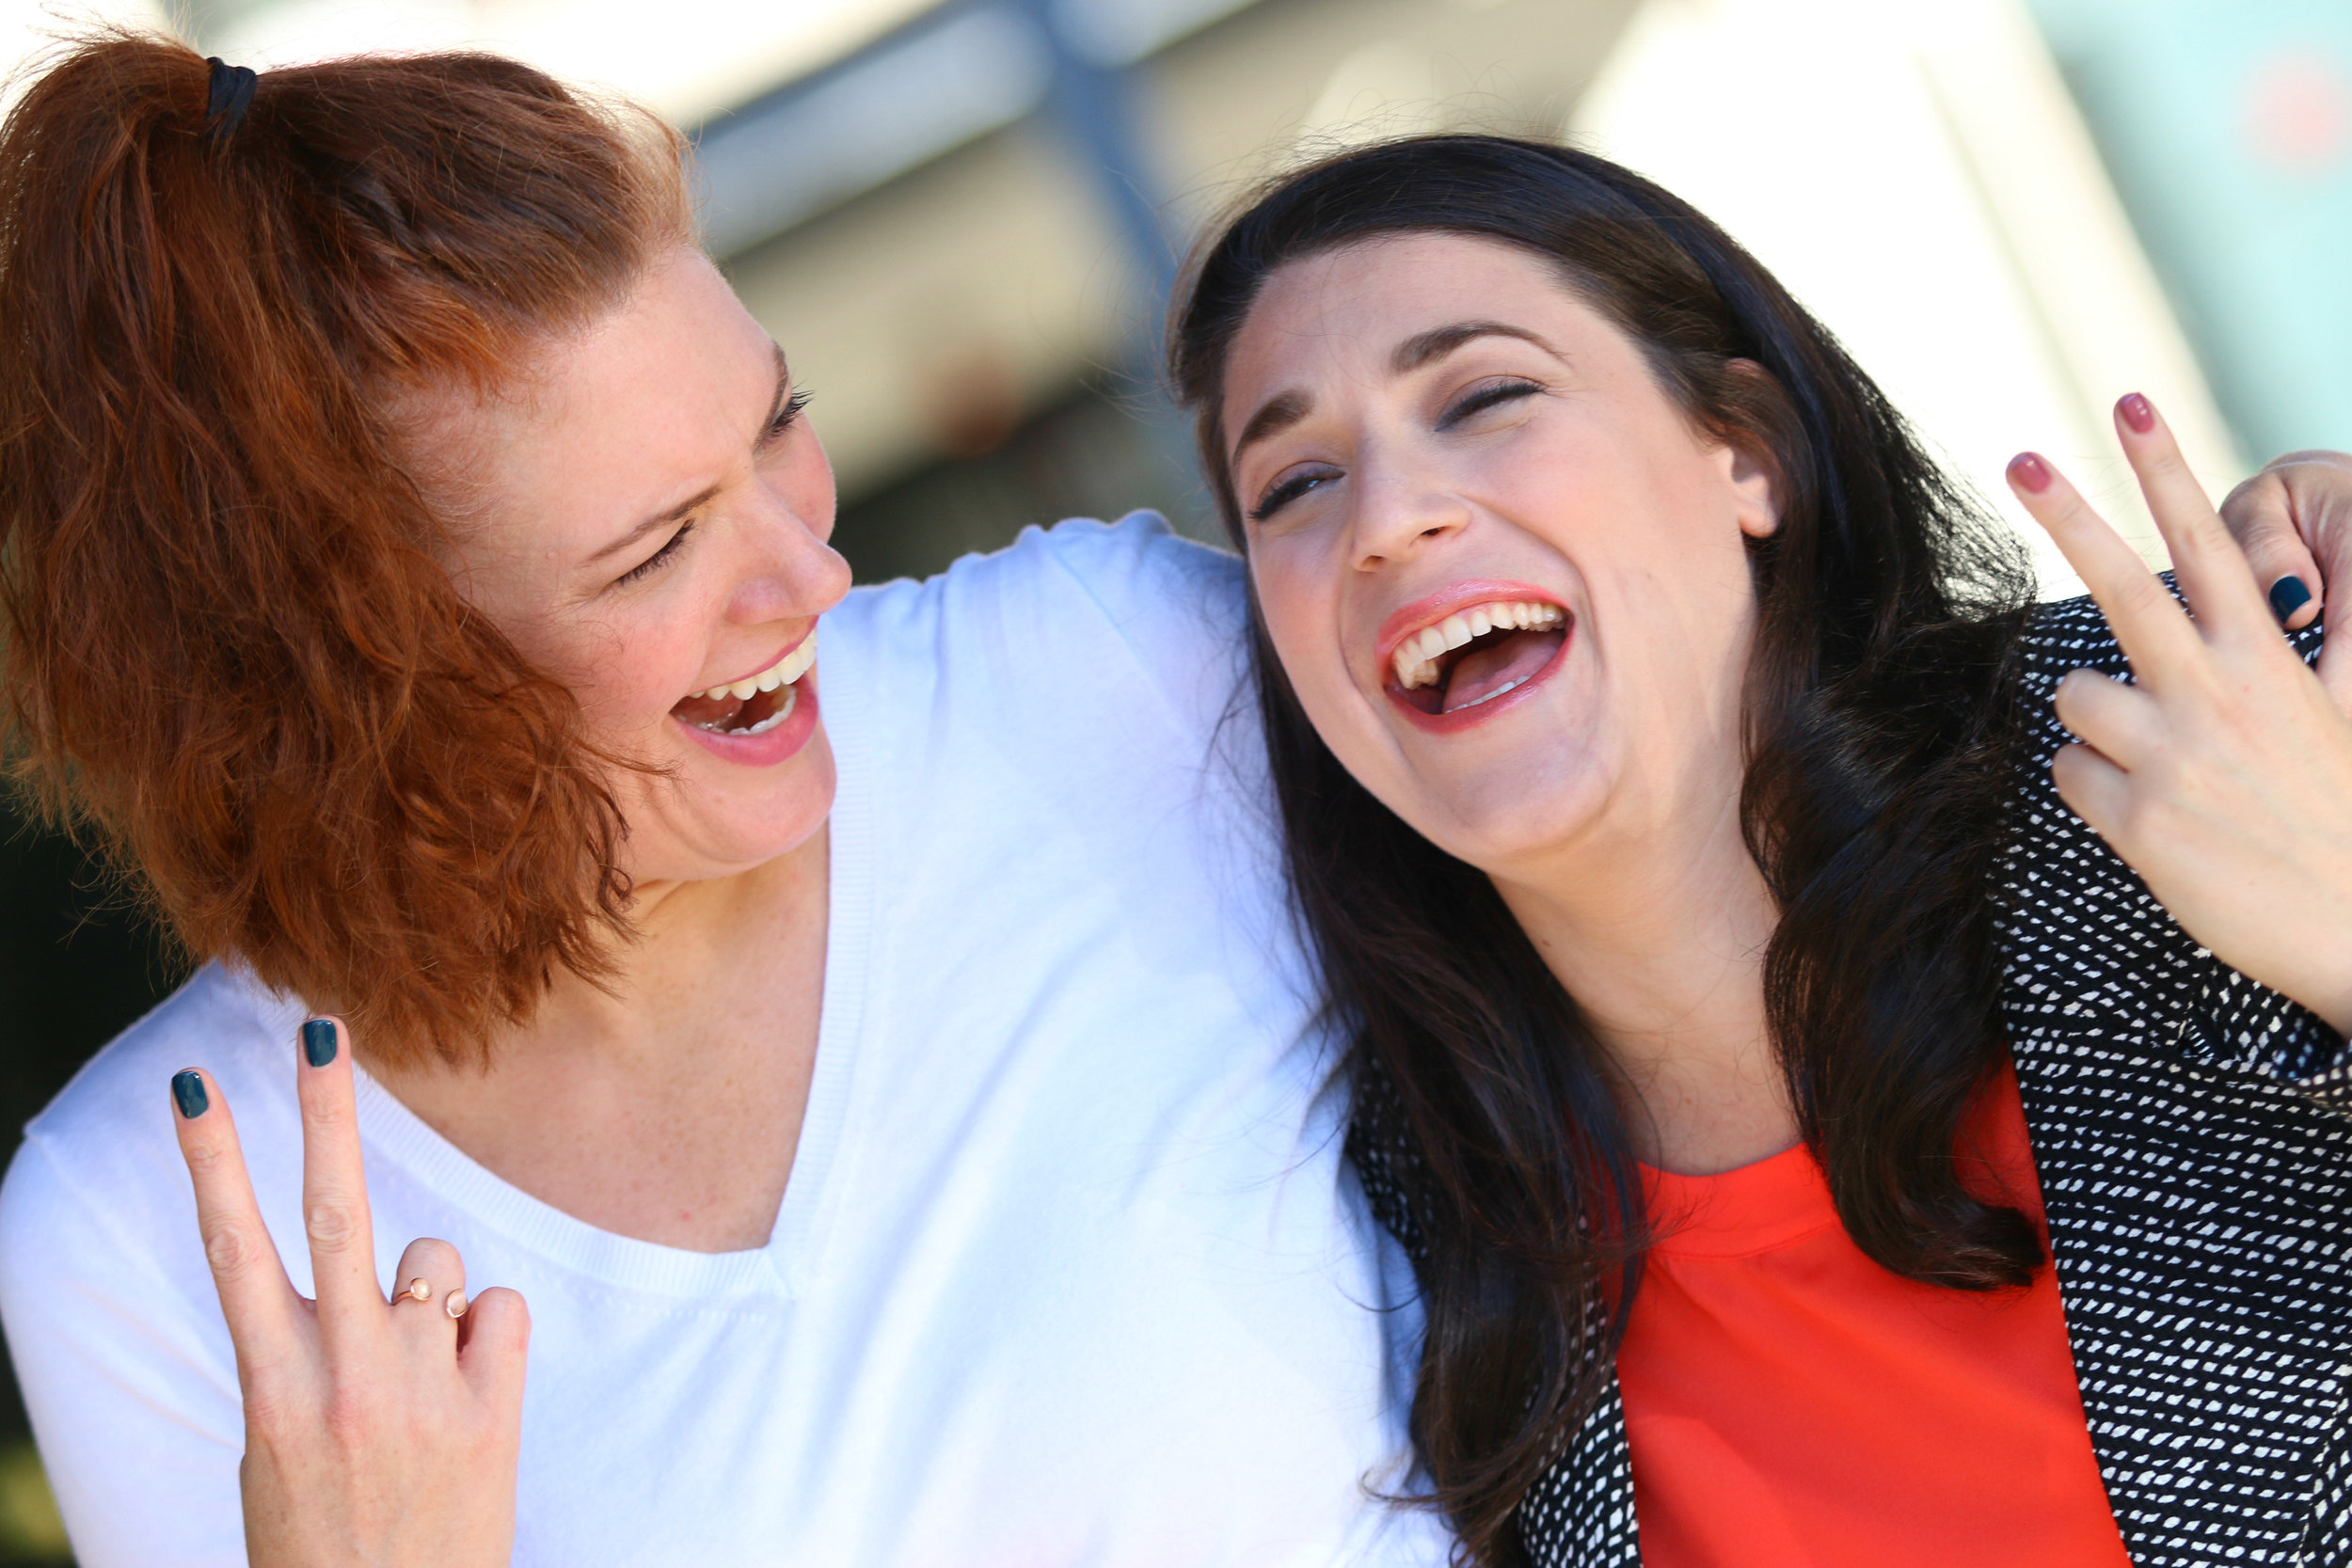 Claire and Jessie laughing.jpg